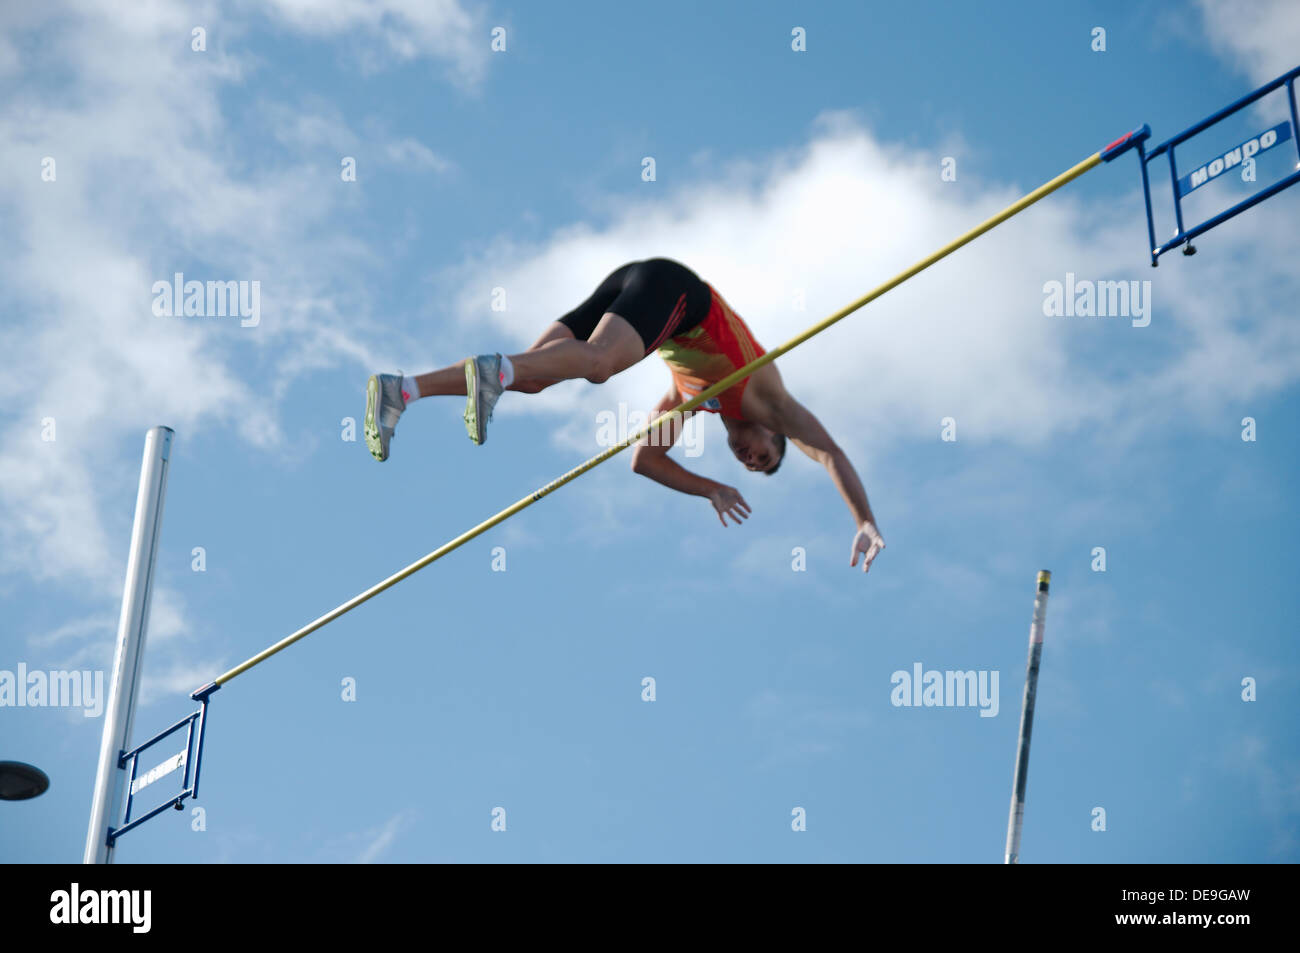 Gateshead, UK, 14 September 2013. Alexander Straub of Germany clearing the bar in the pole vault at the Great North City Games 2013. He finished in third place with this jump of 5.10m © Colin Edwards / Alamy Live News - Stock Image